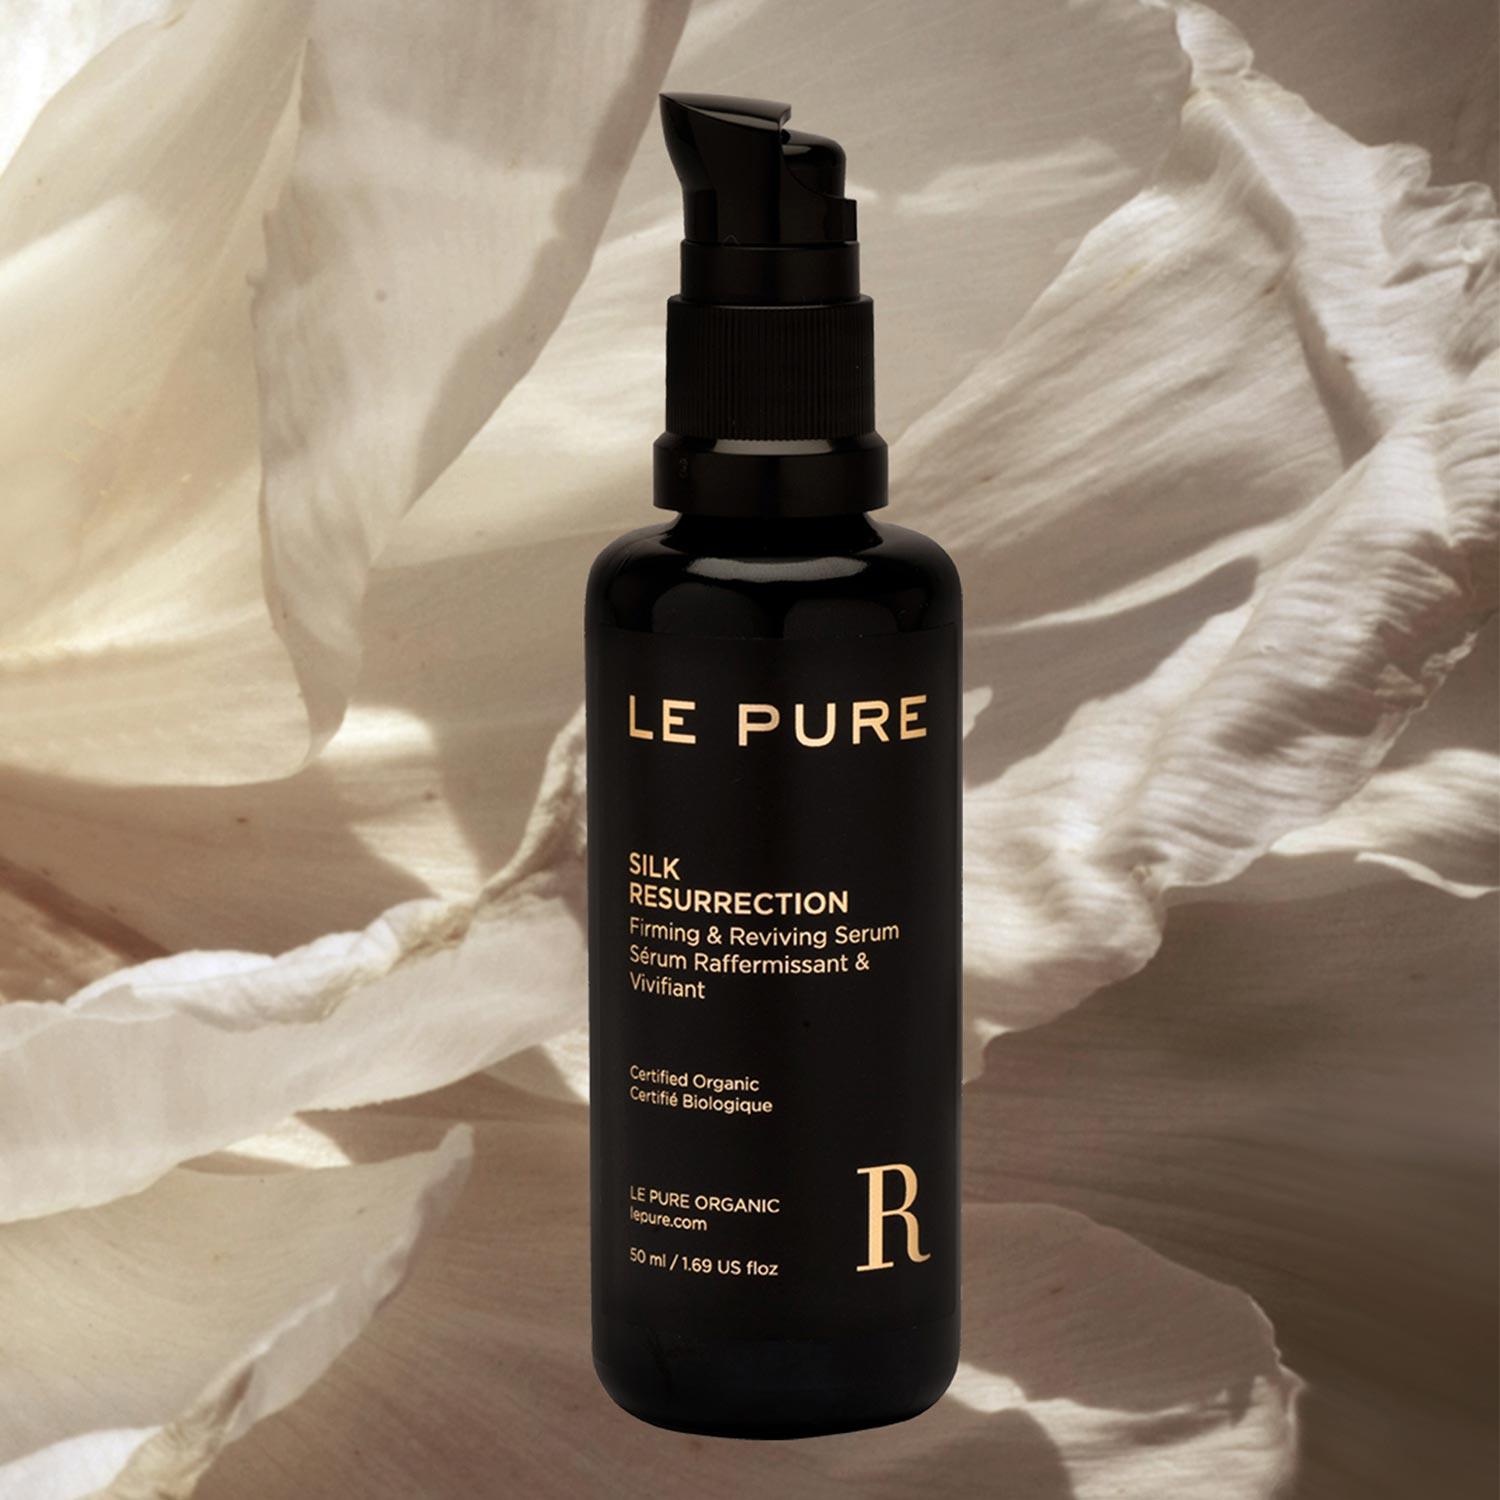 Silk Resurrection LE PURE